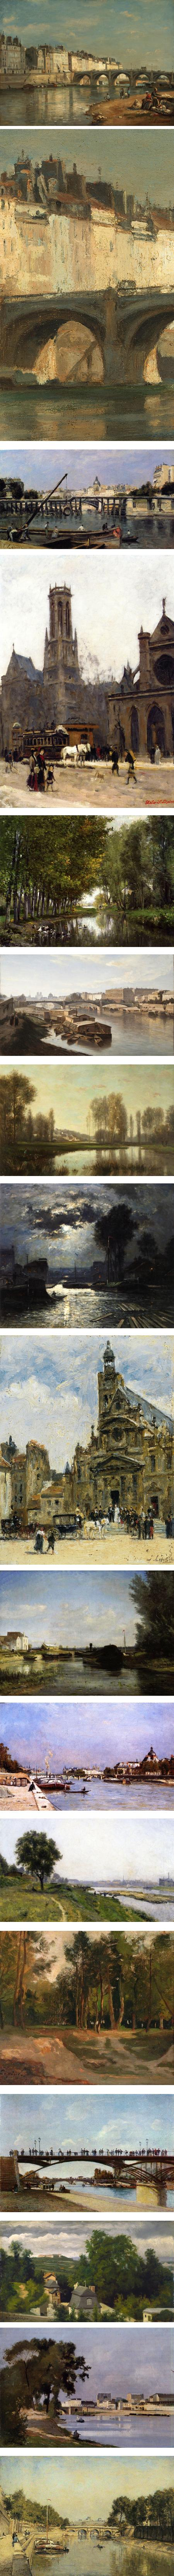 Stanislas Lepine, pre-Impressionist scenes of paris, the Seine, Normandy and nearby villages